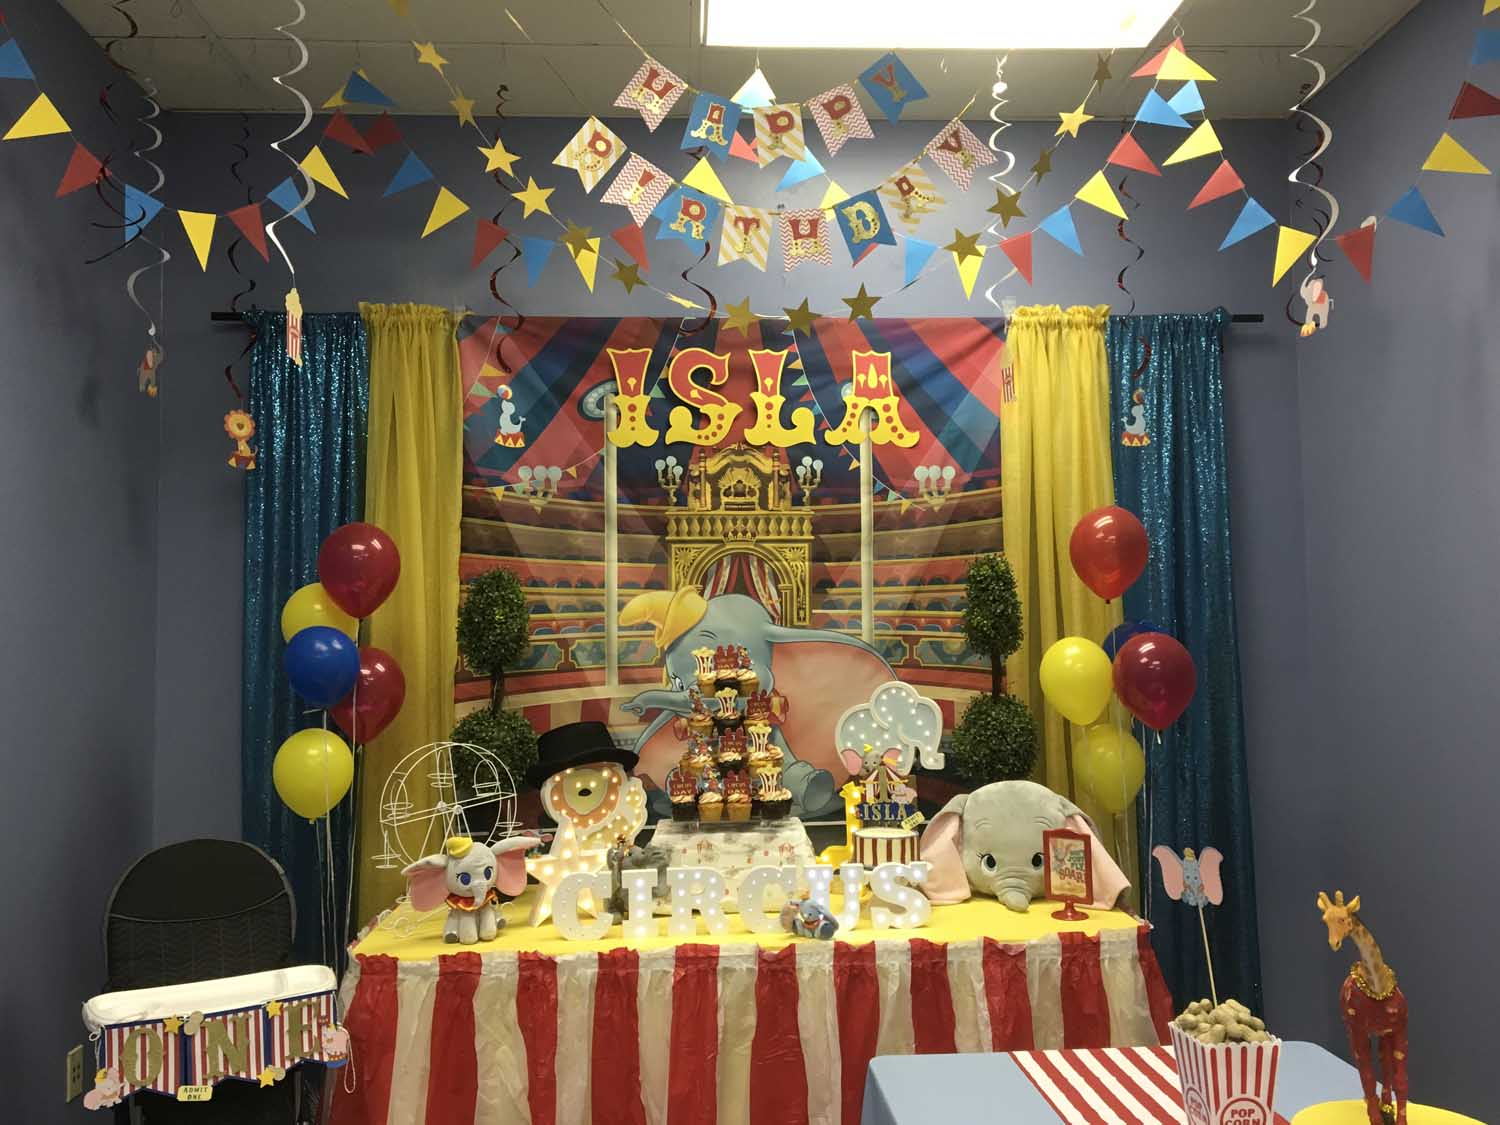 Dumbo Themed 1st Birthday Party Hosted at our Orlando area indoor playground